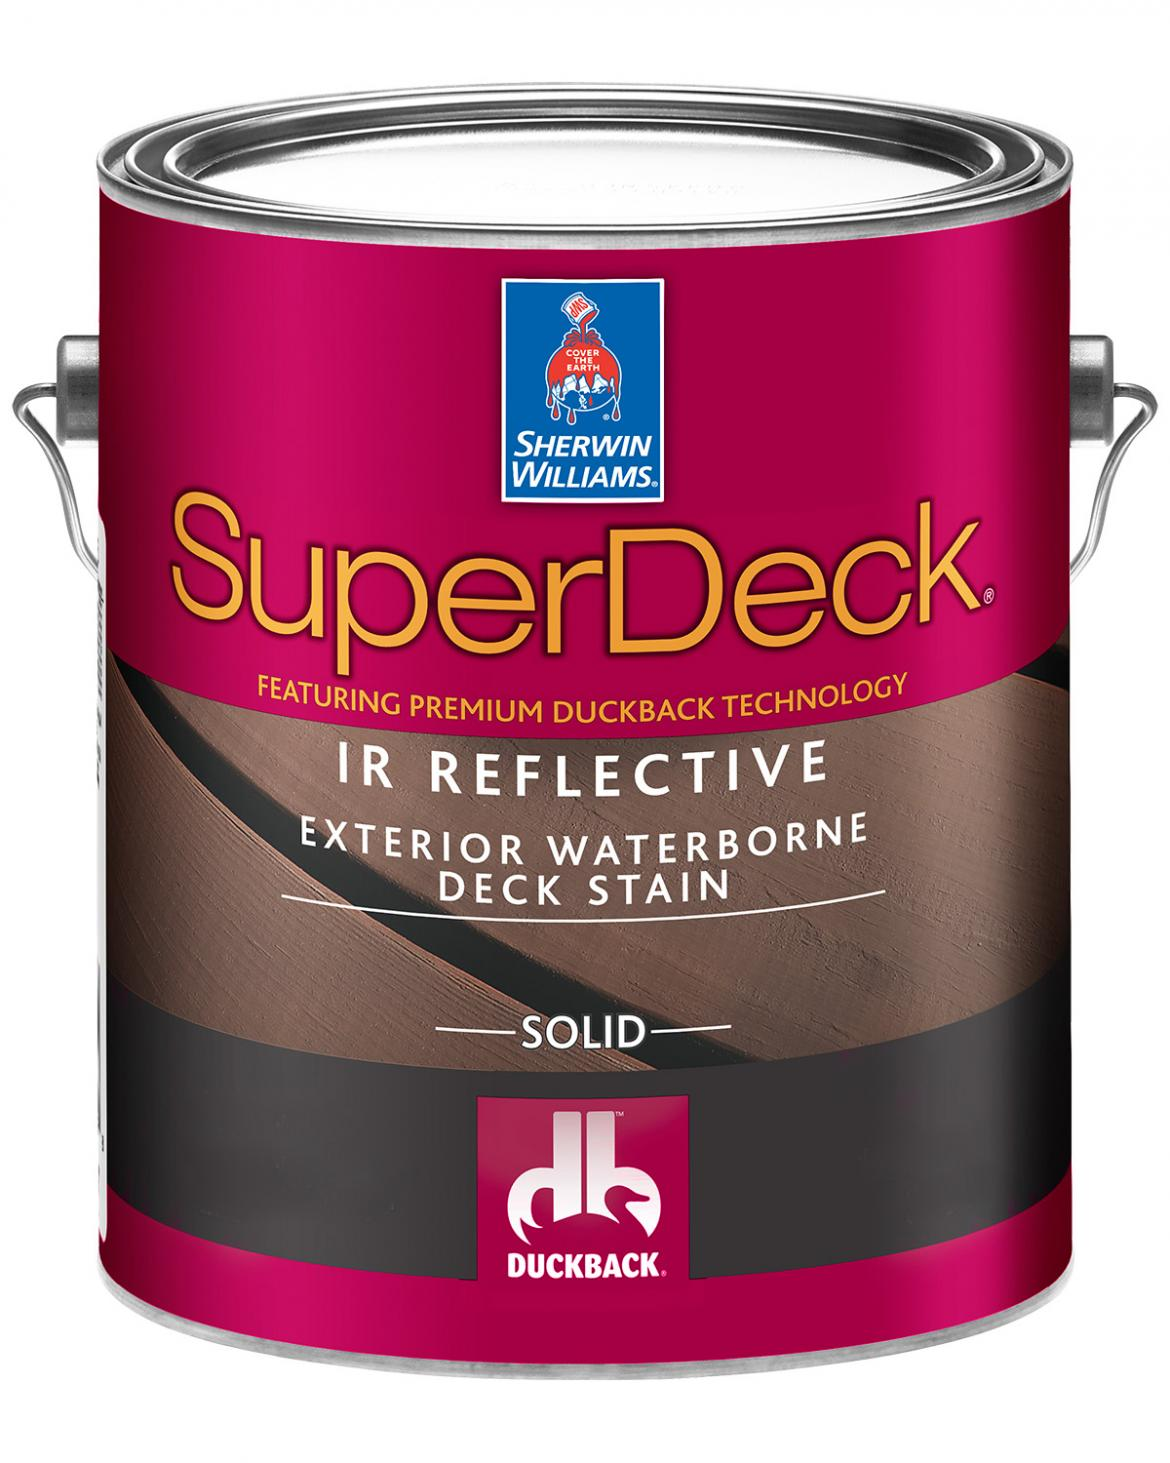 Sherwin Williams deck stain: SuperDeck Can